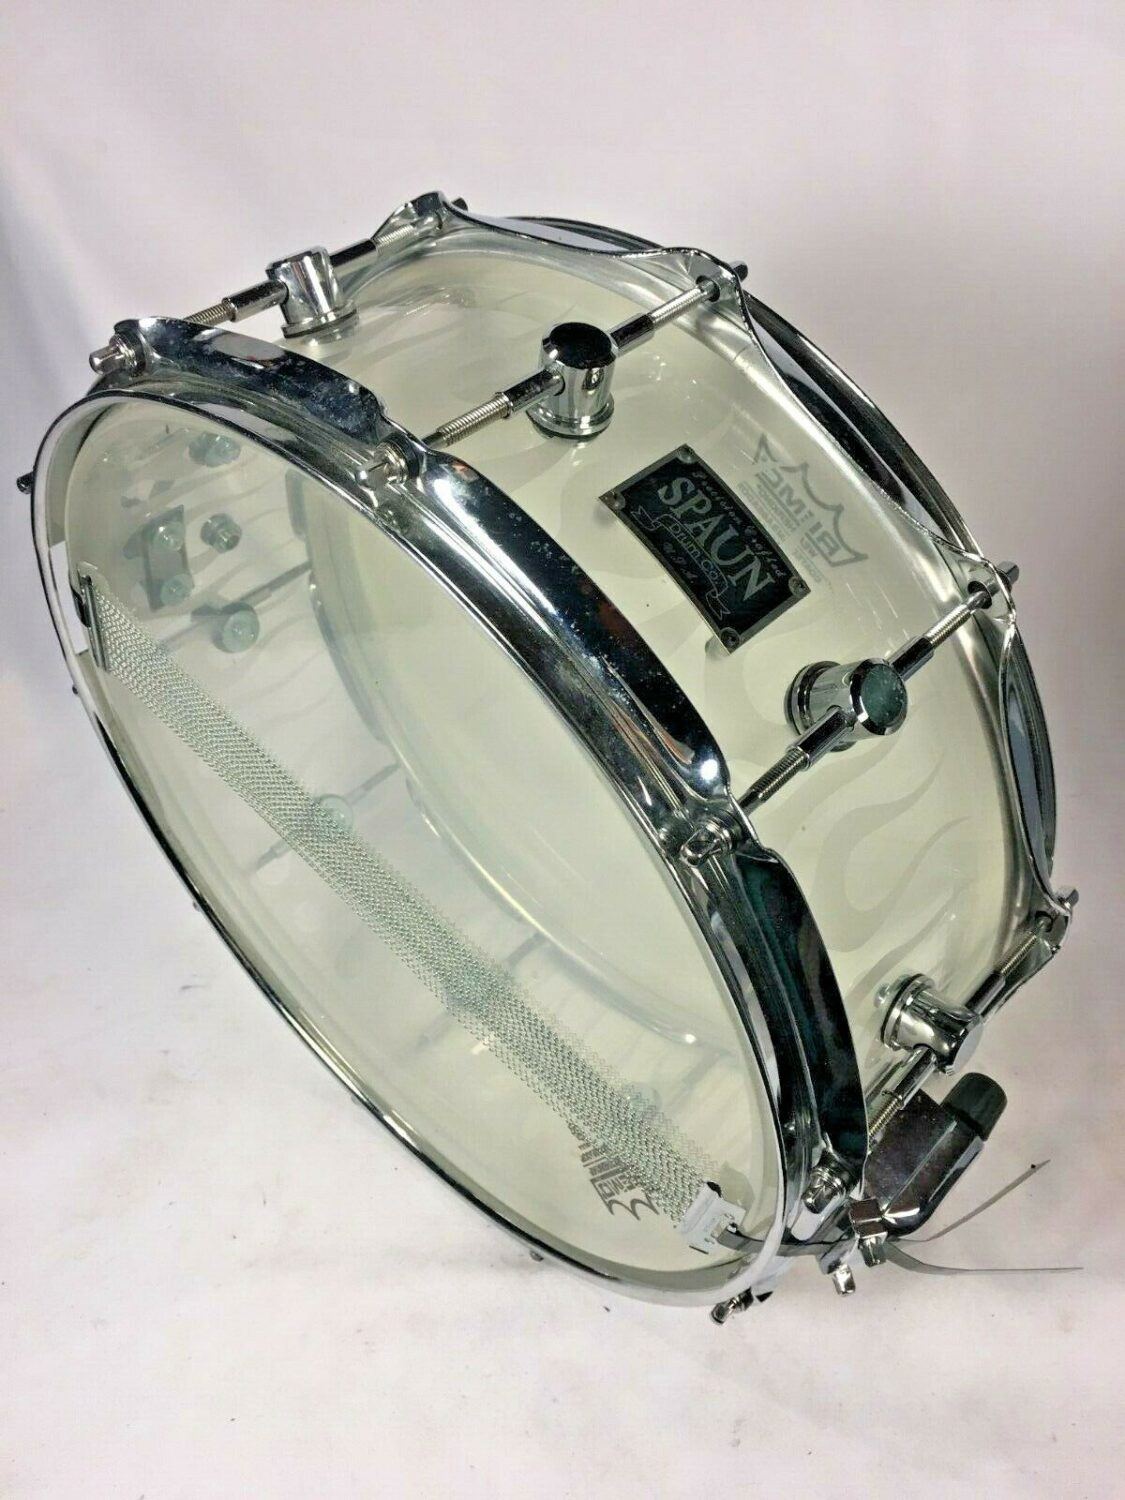 """Spaun Acrylic Flame Snare 5 1/2 """"x 14"""" LOUD AMAZING DRUM Clear"""